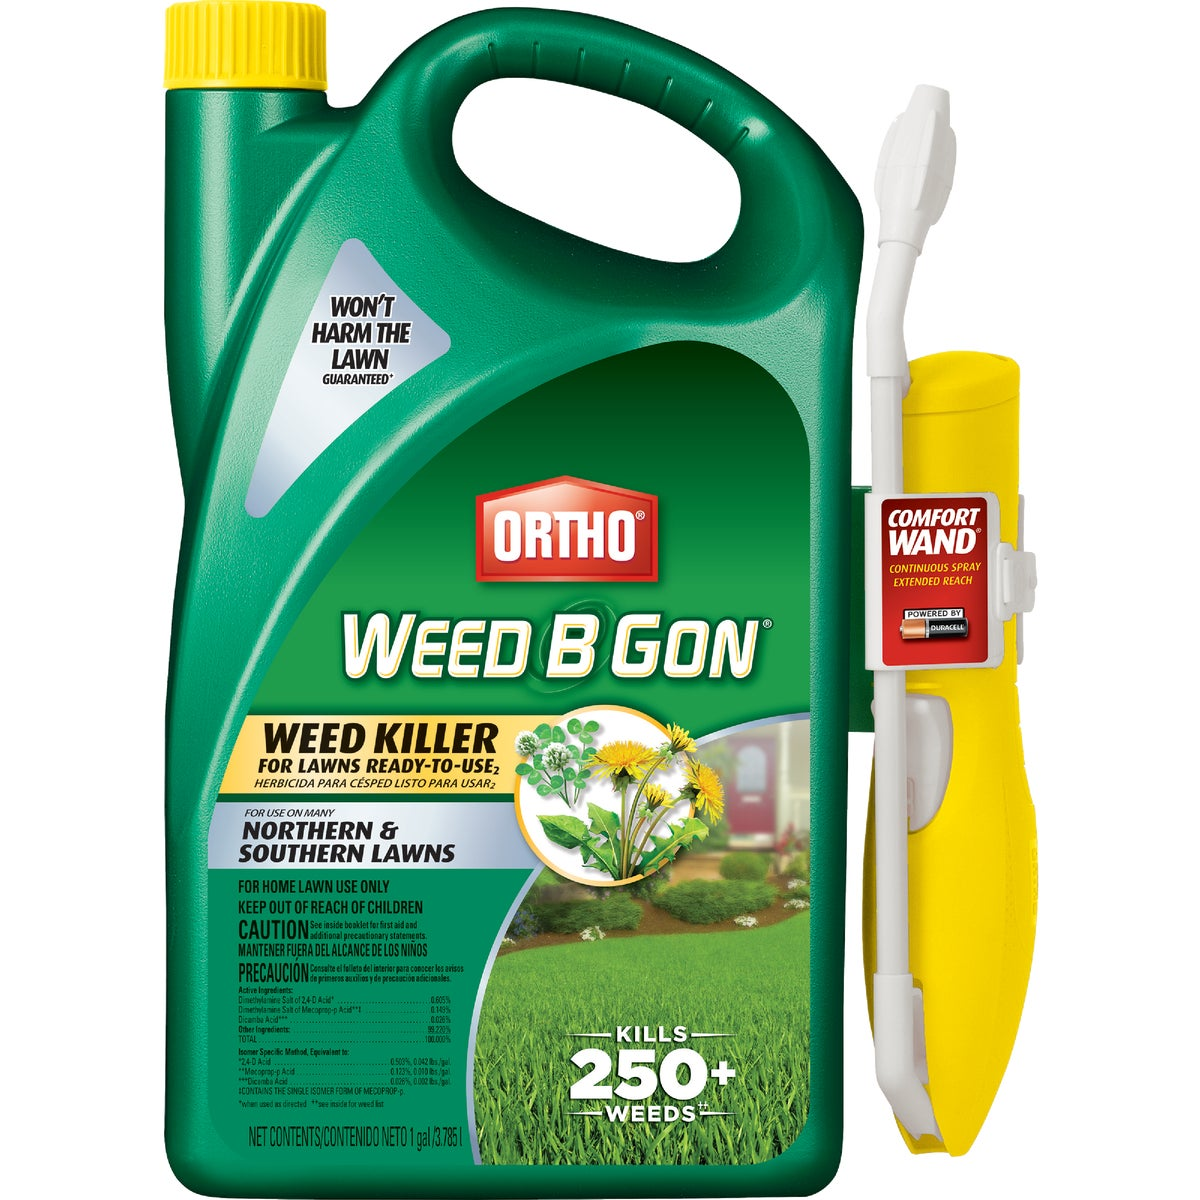 1.33GAL WEED B GONE RTU - 0404310 by Scotts Company